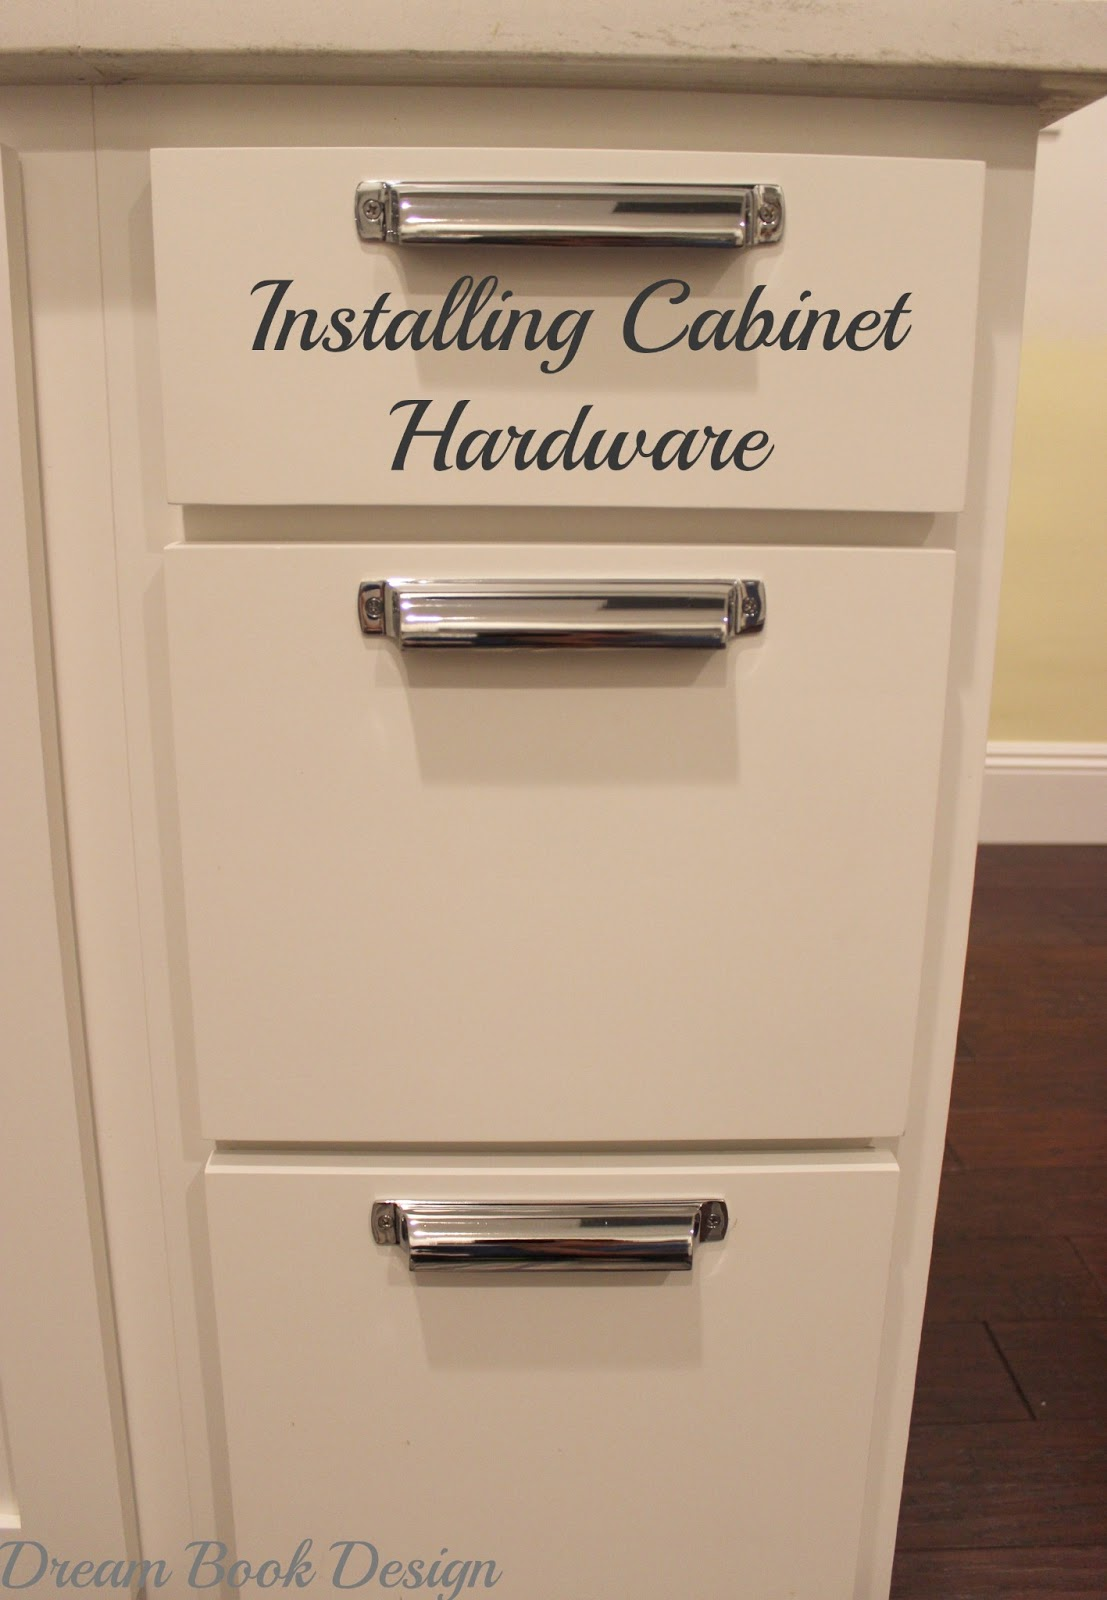 How To Install Kitchen Cabinet Hardware Tutorial Dream Book Design